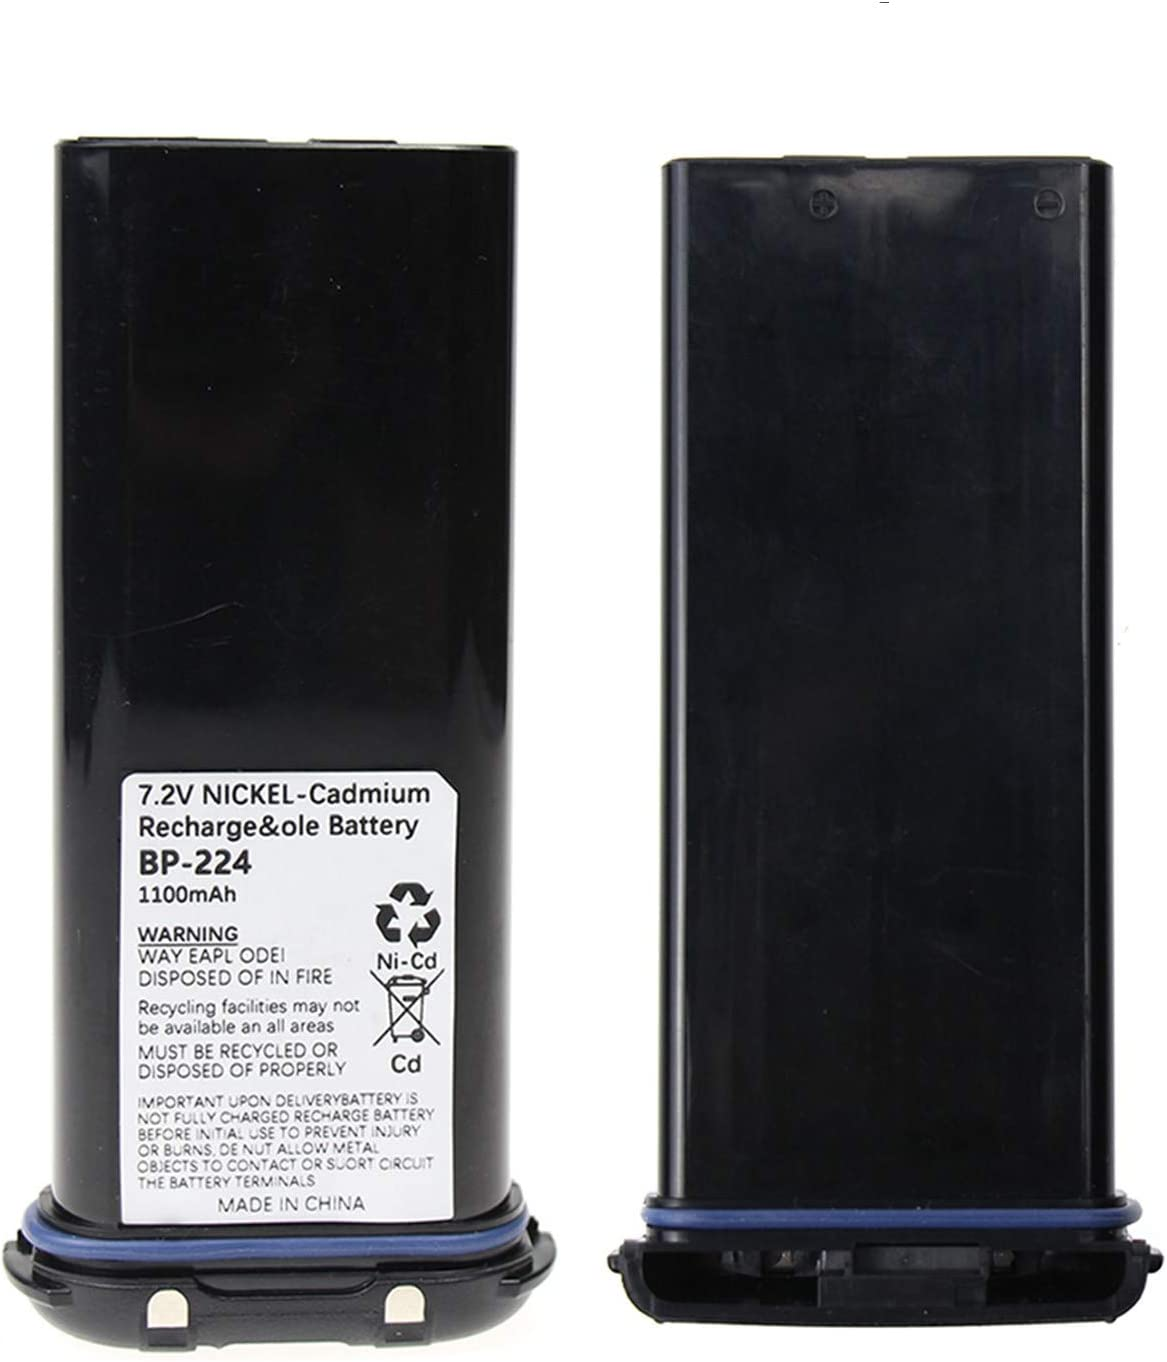 1100mAh Battery Replacement for Icom IC-IC-M2A IC-IC-M31 IC-M21 IC-M32 BP-224 BP-224H